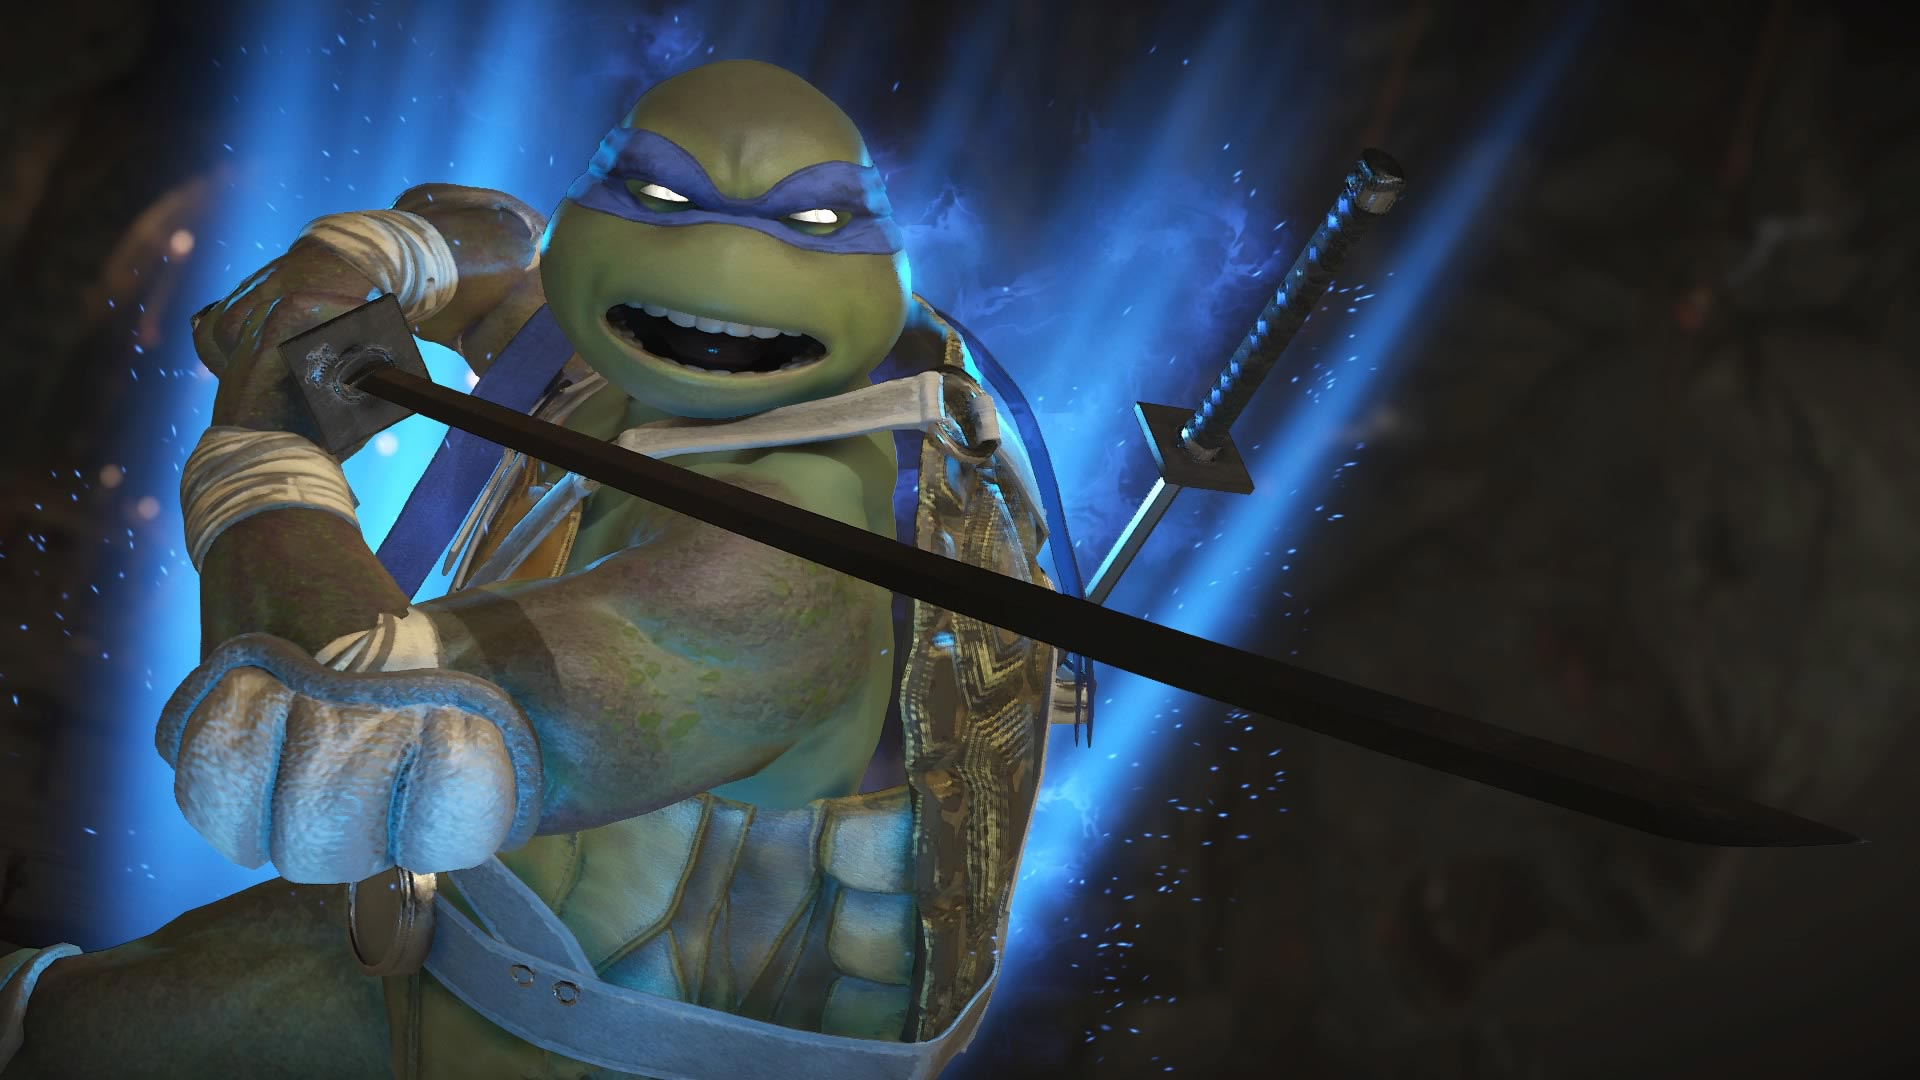 Teenage Mutant Ninja Turtles now available in Injustice 2 4 out of 6 image gallery